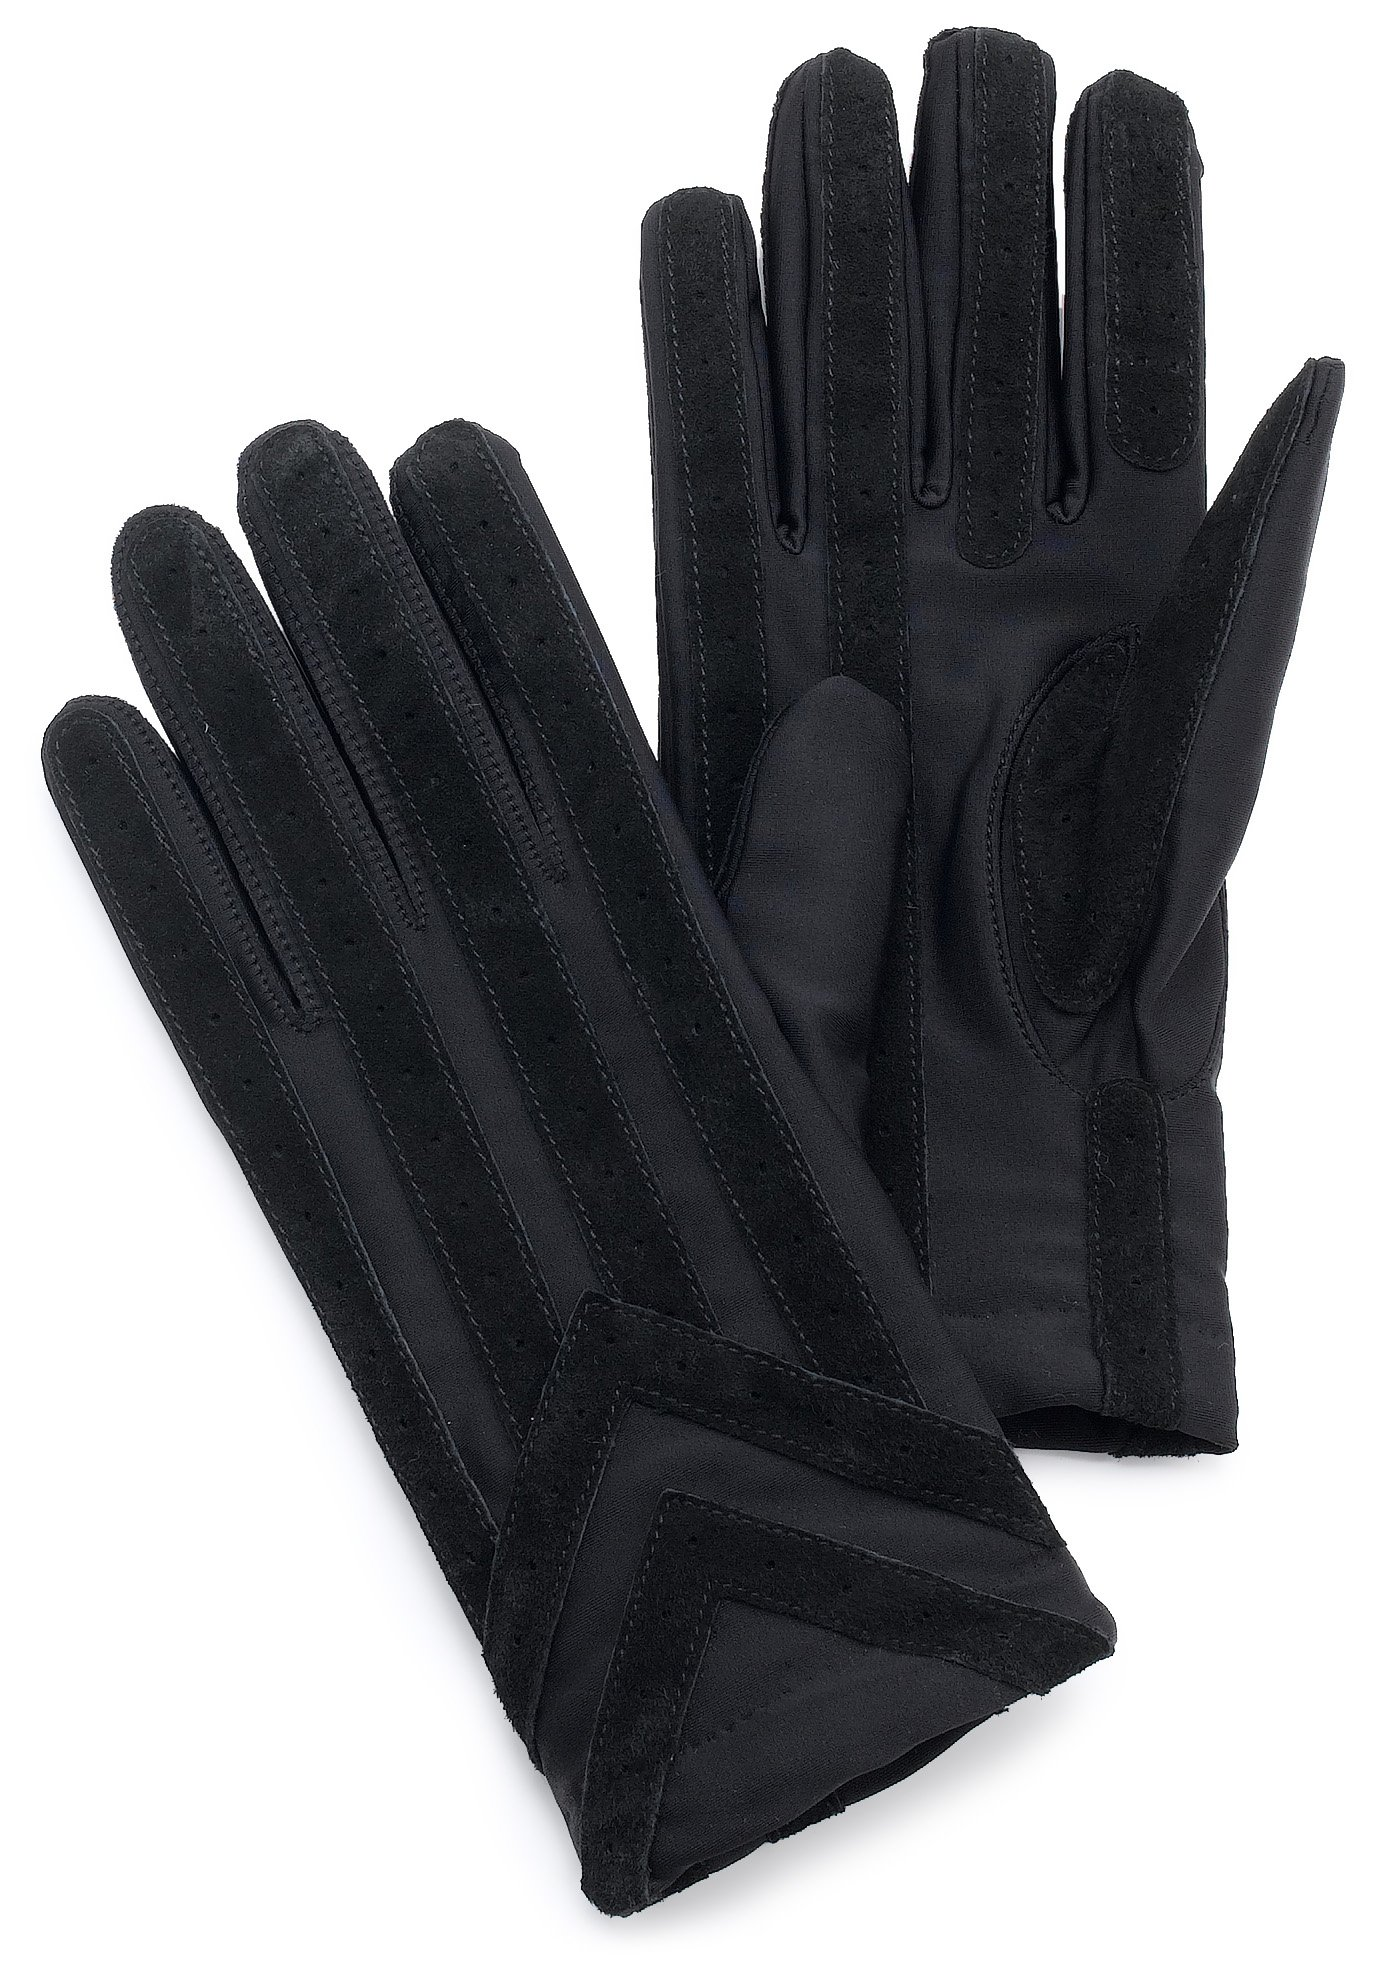 isotoner Signature Men's Spandex Stretch Cold Weather Gloves with Warm Knit Lining